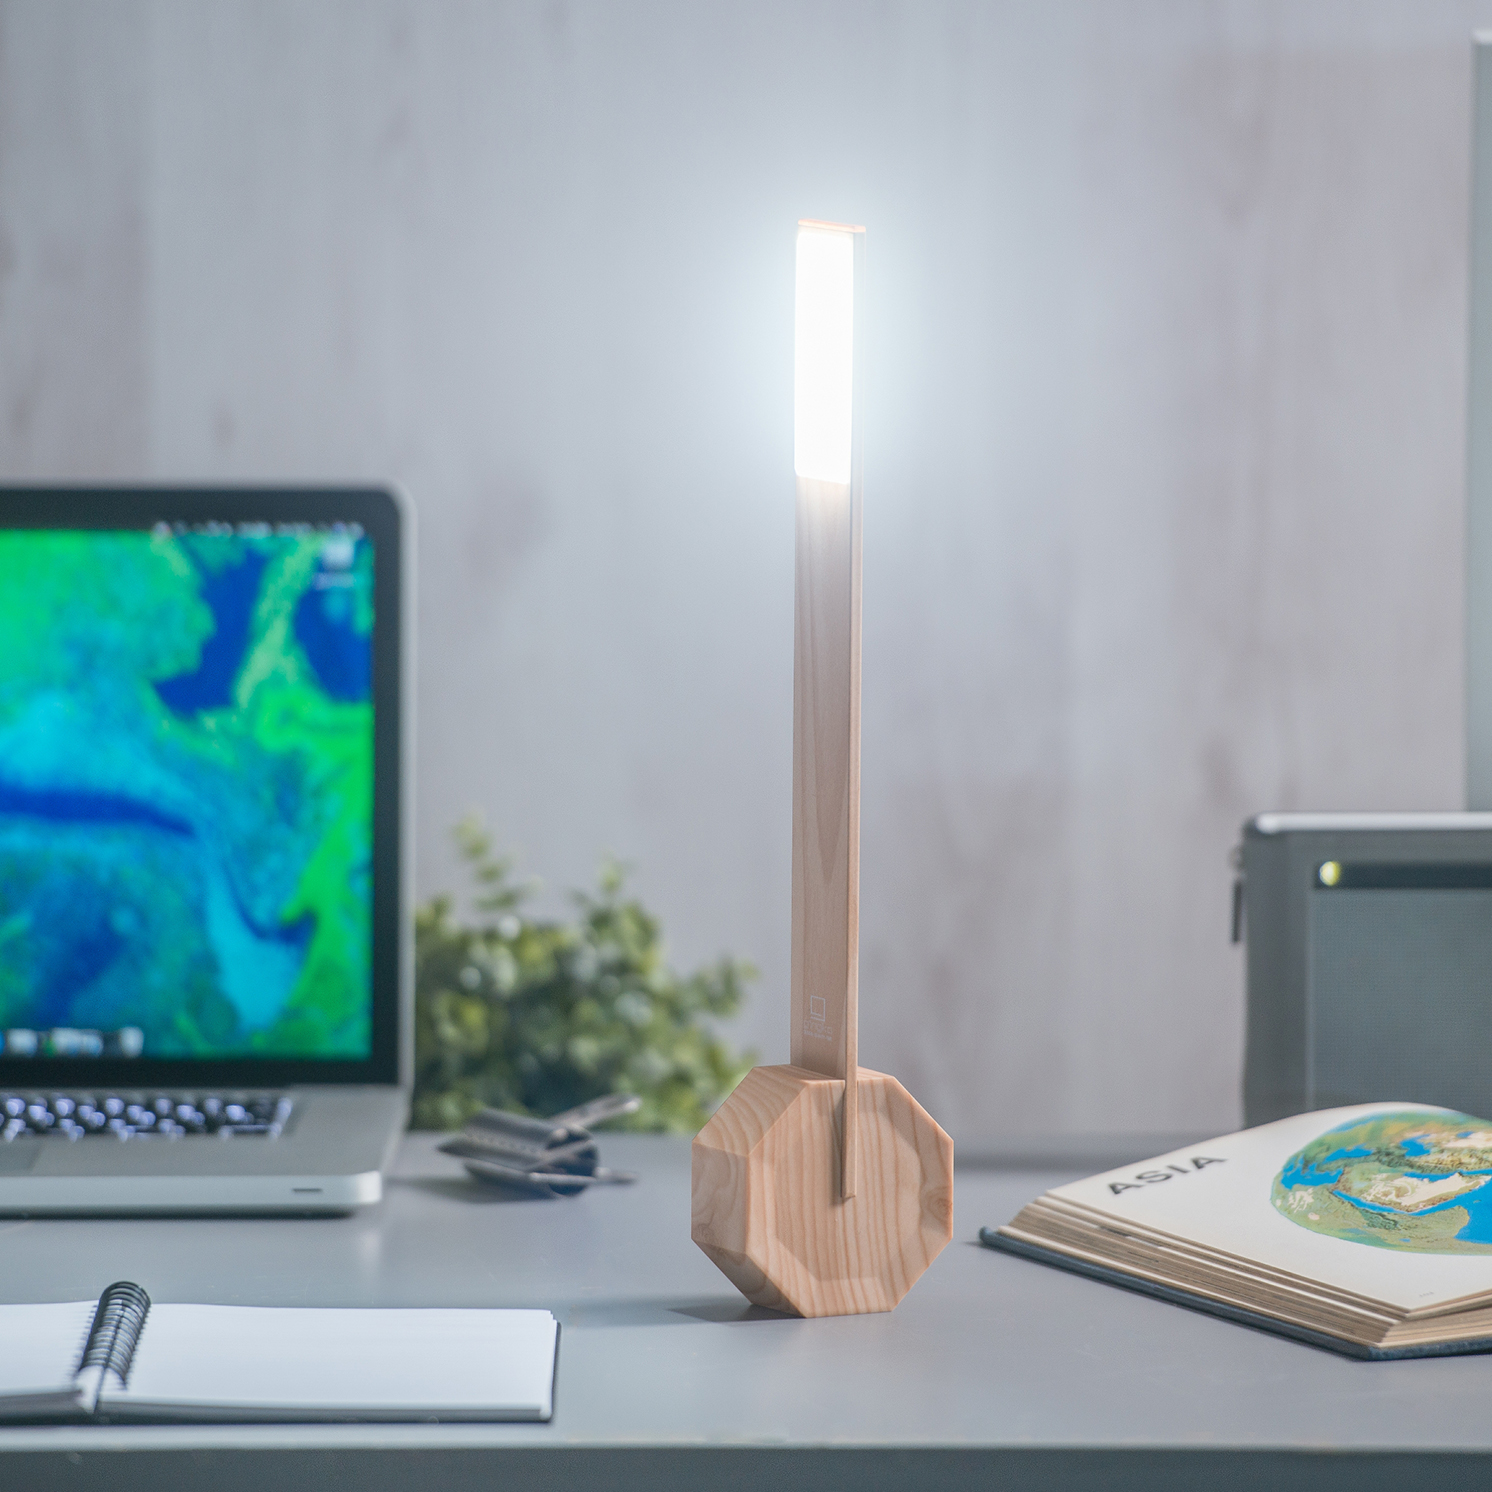 Gingko – Octagon One Desk Light/Lamp in Gift Box – Maple